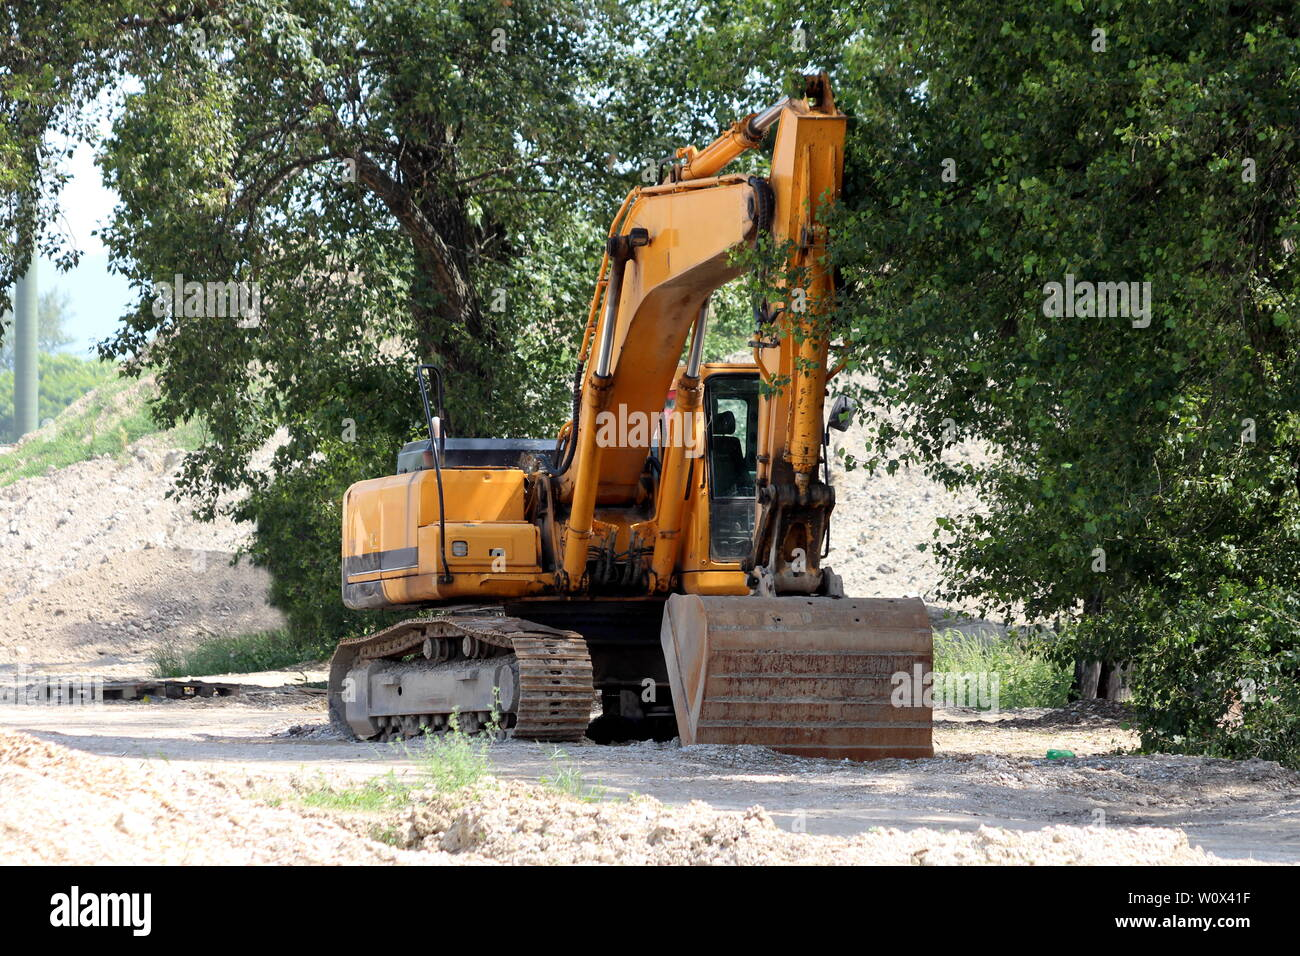 Large Excavator Stock Photos & Large Excavator Stock Images - Alamy